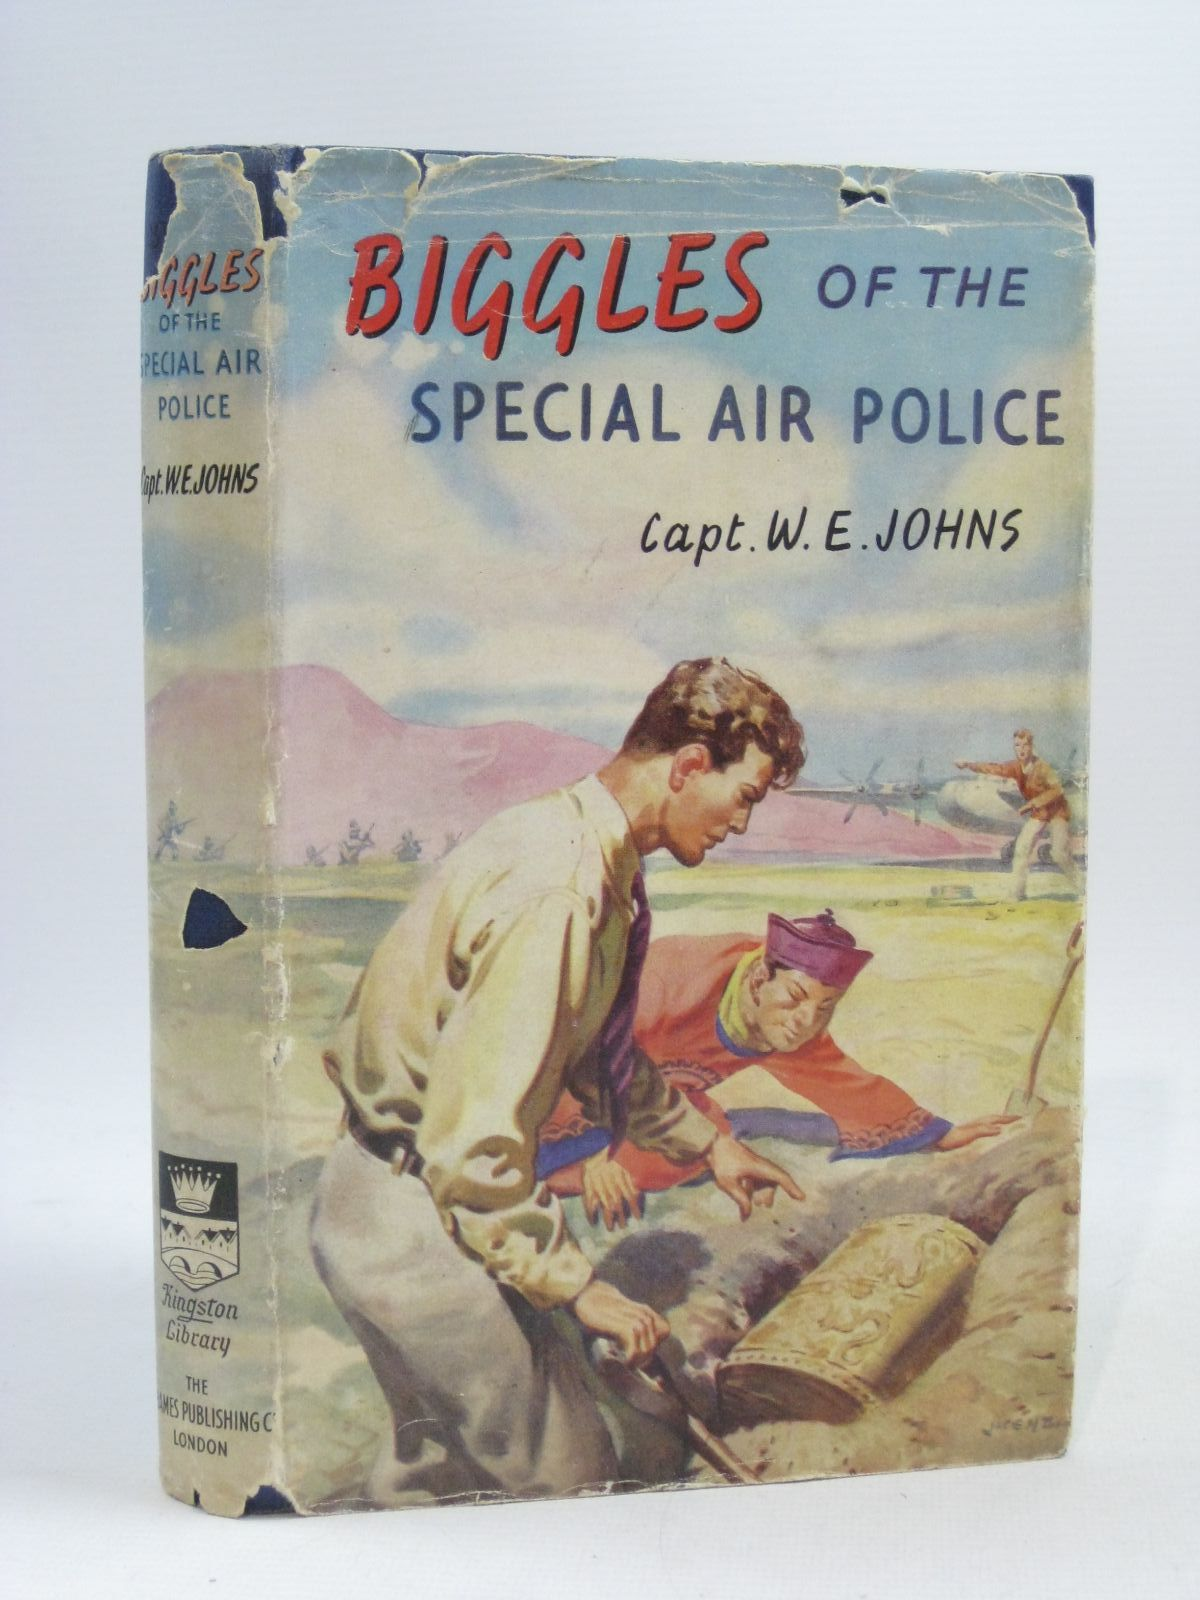 Photo of BIGGLES OF THE SPECIAL AIR POLICE written by Johns, W.E. published by The Thames Publishing Co. (STOCK CODE: 1404371)  for sale by Stella & Rose's Books